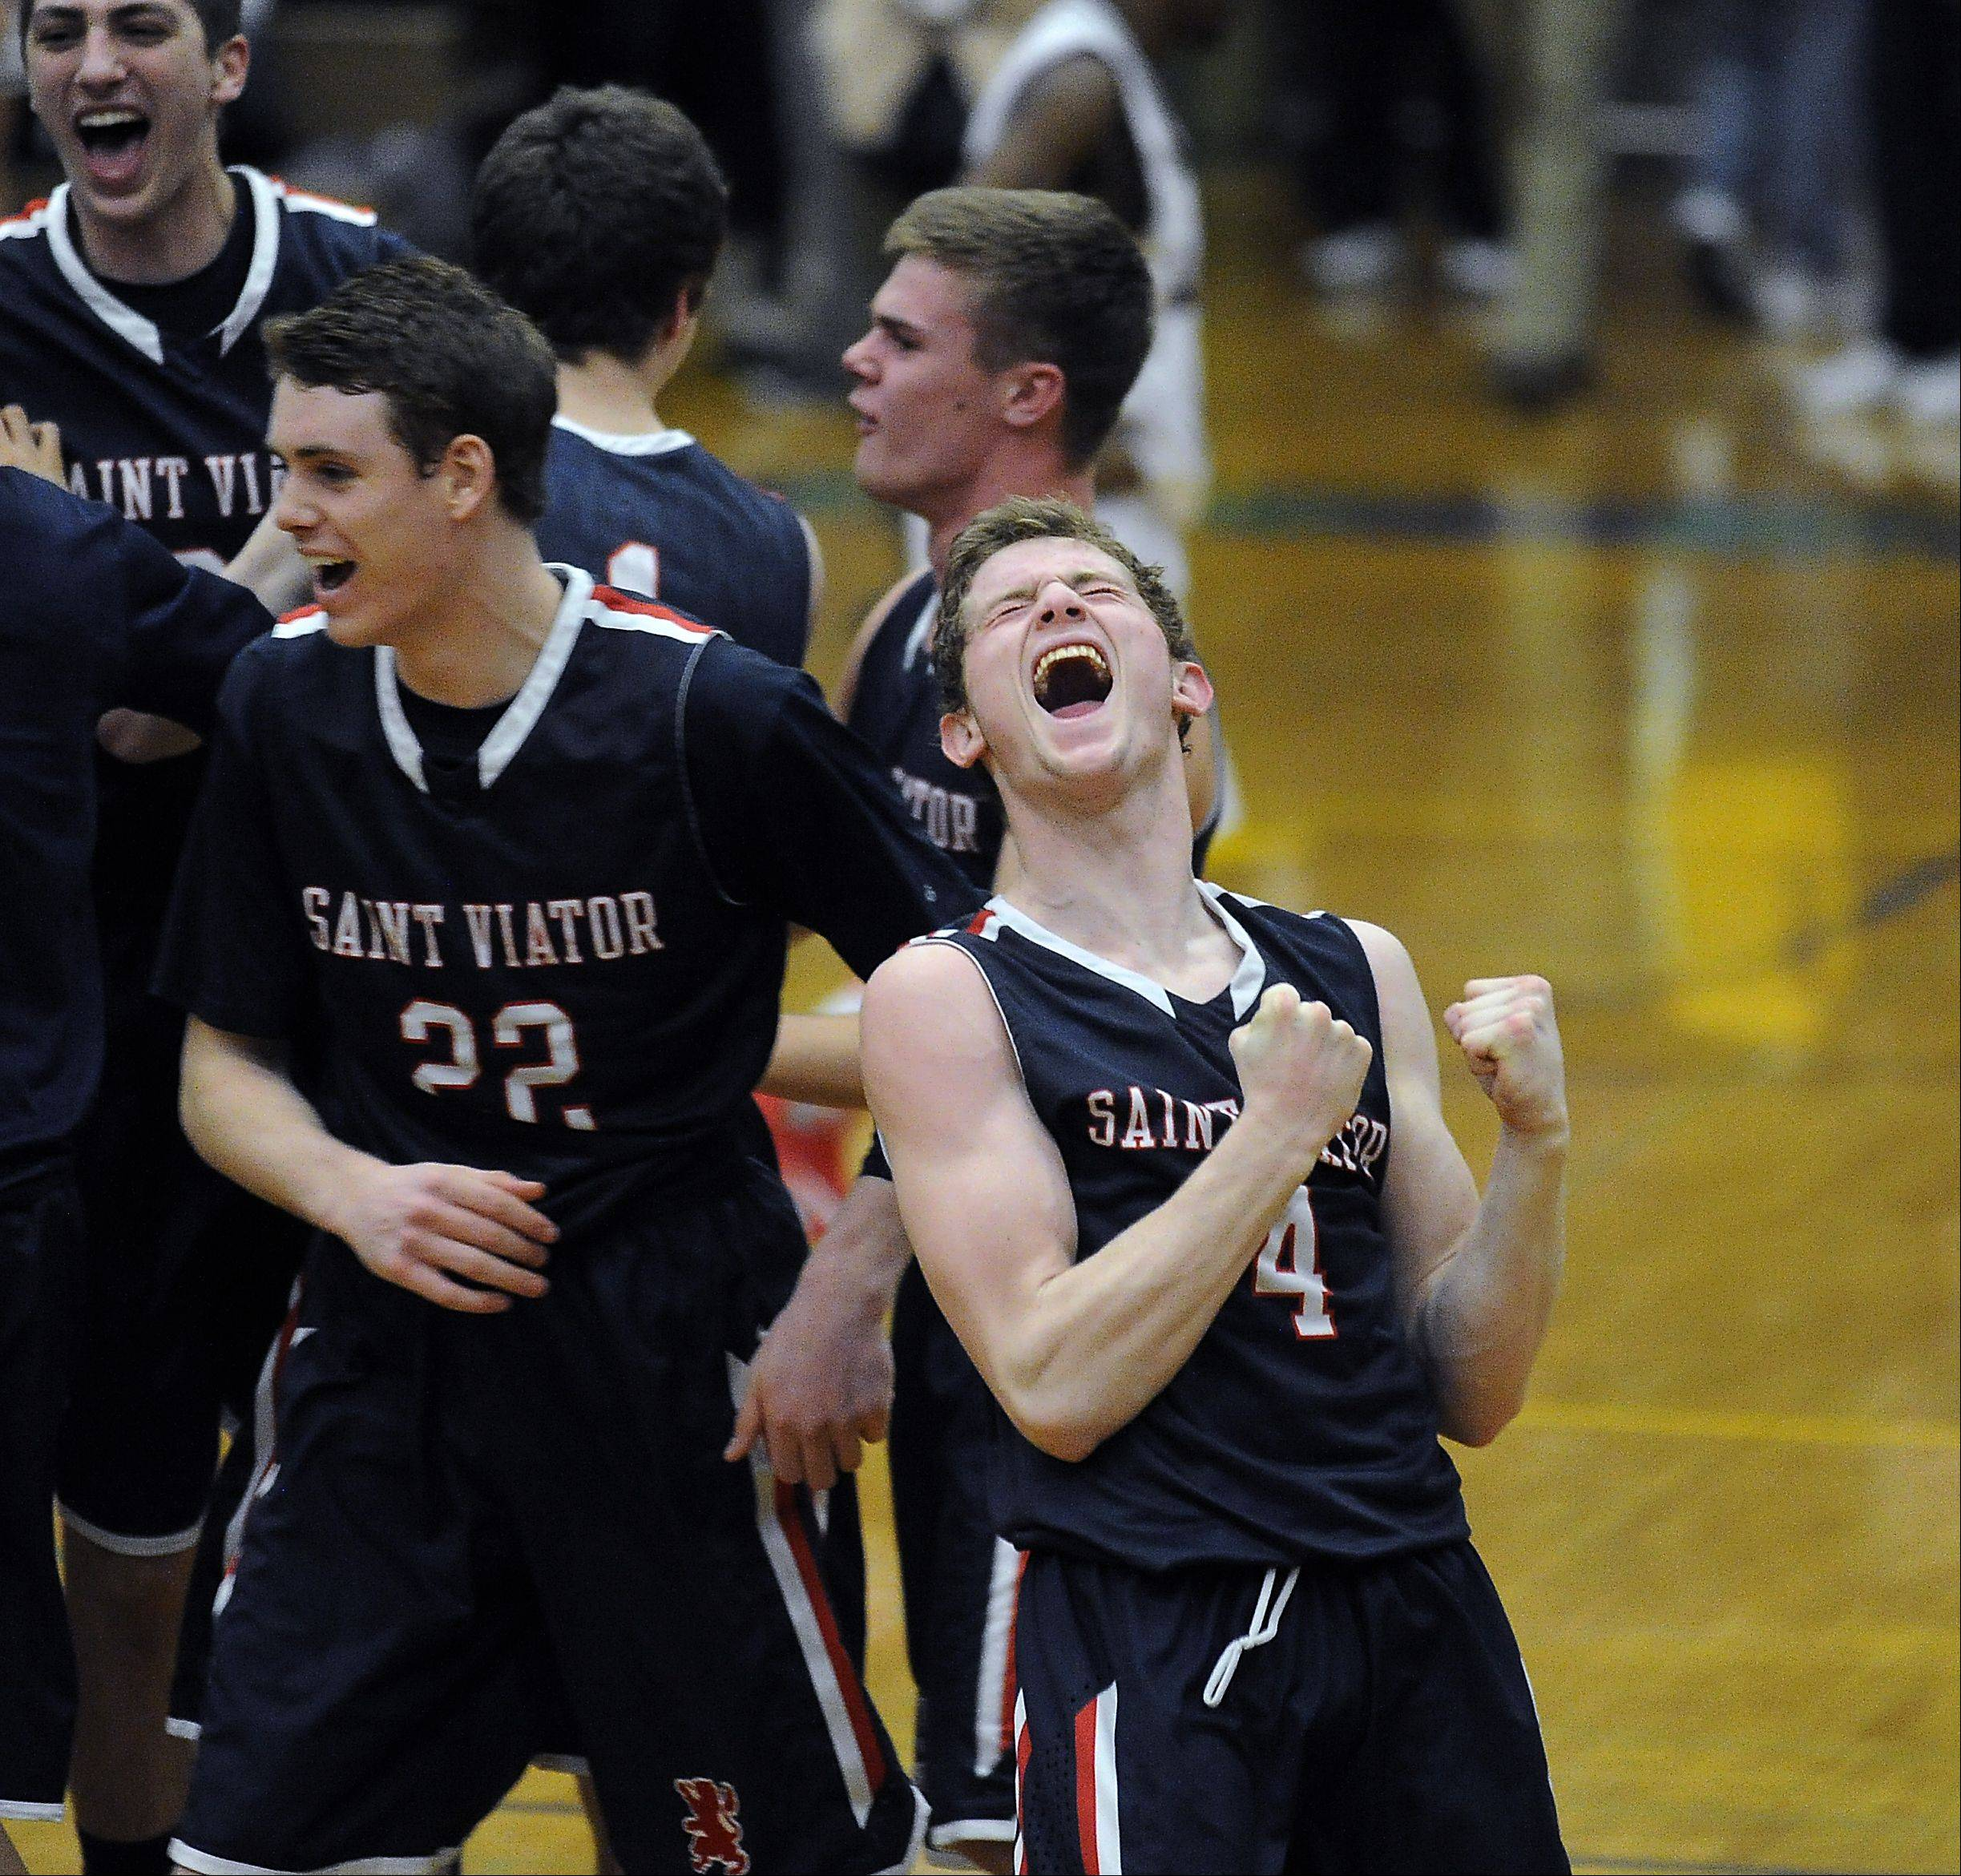 St. Viator's Kevin Hammarlund celebrates the Lions' victory over Zion-Benton in the Class 4A Waukegan sectional semifinals Thursday.